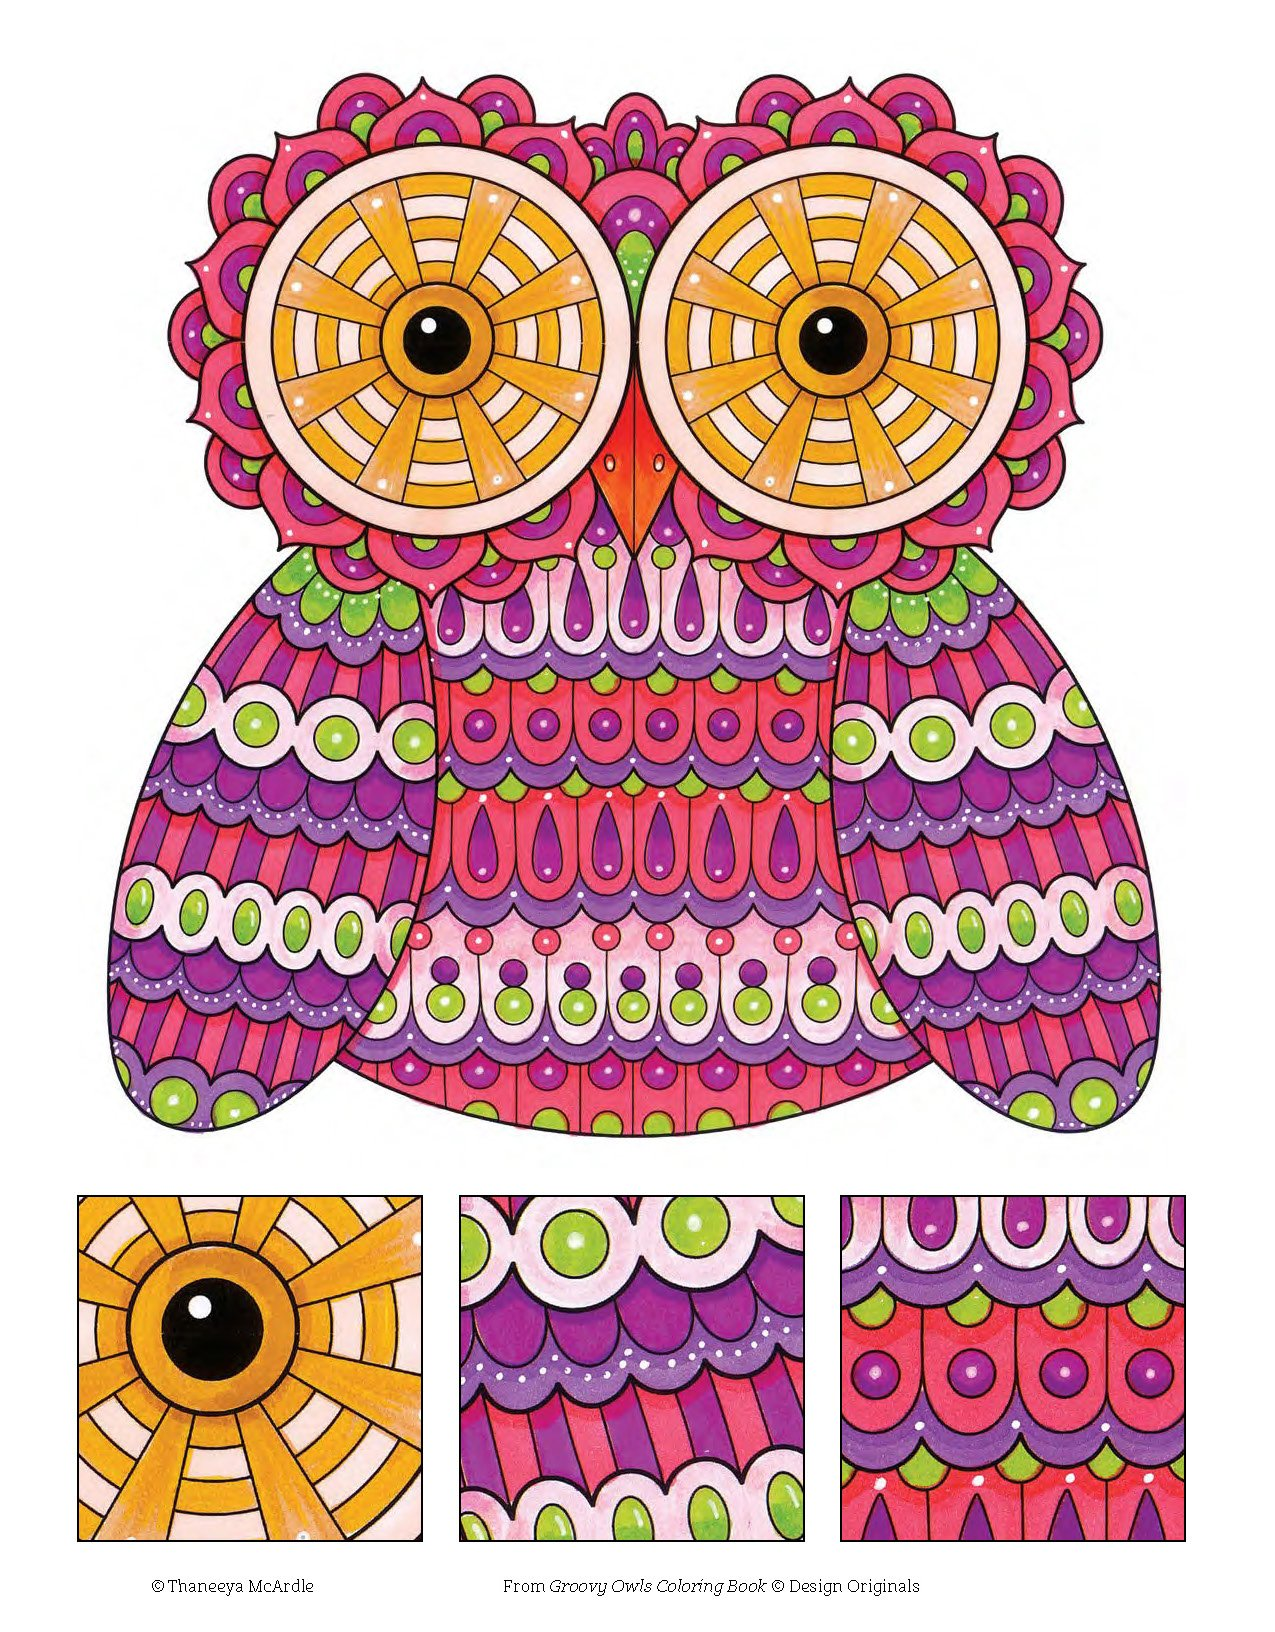 Amazon Groovy Owls Coloring Book Is Fun Design Originals 9781497202078 Thaneeya McArdle Books